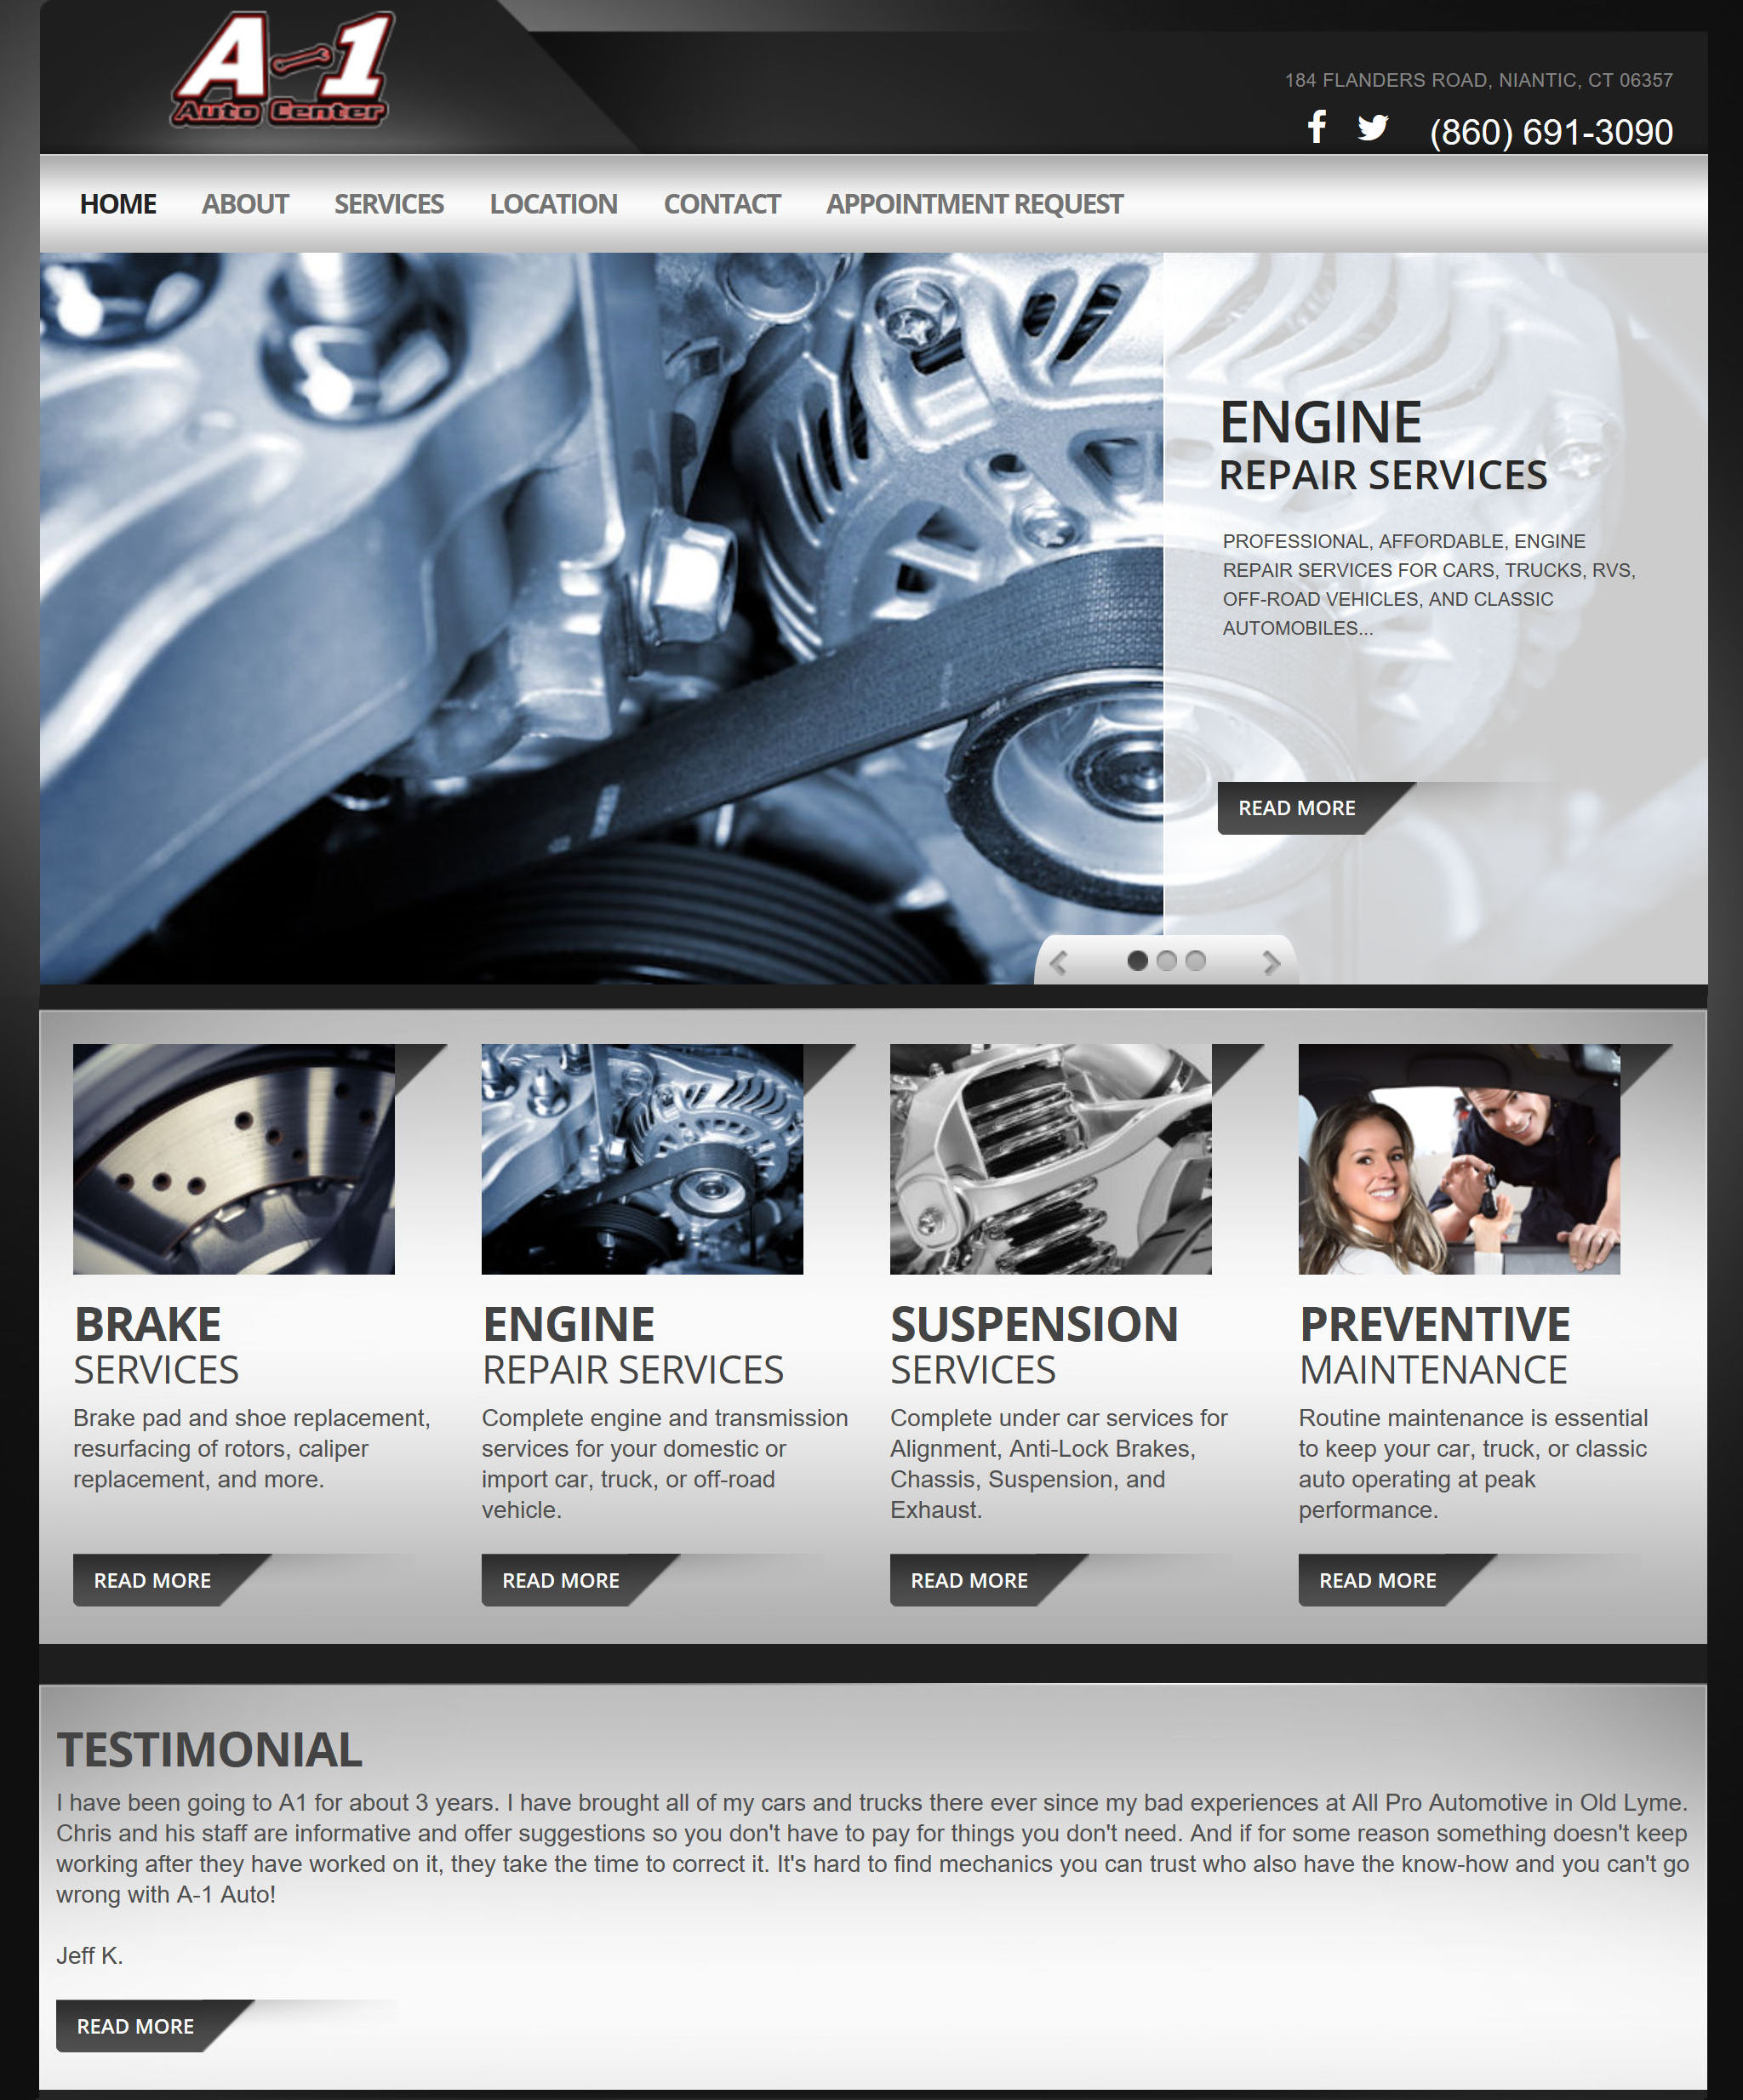 Click or touch to view a portfolio which includes samples of our website design services.